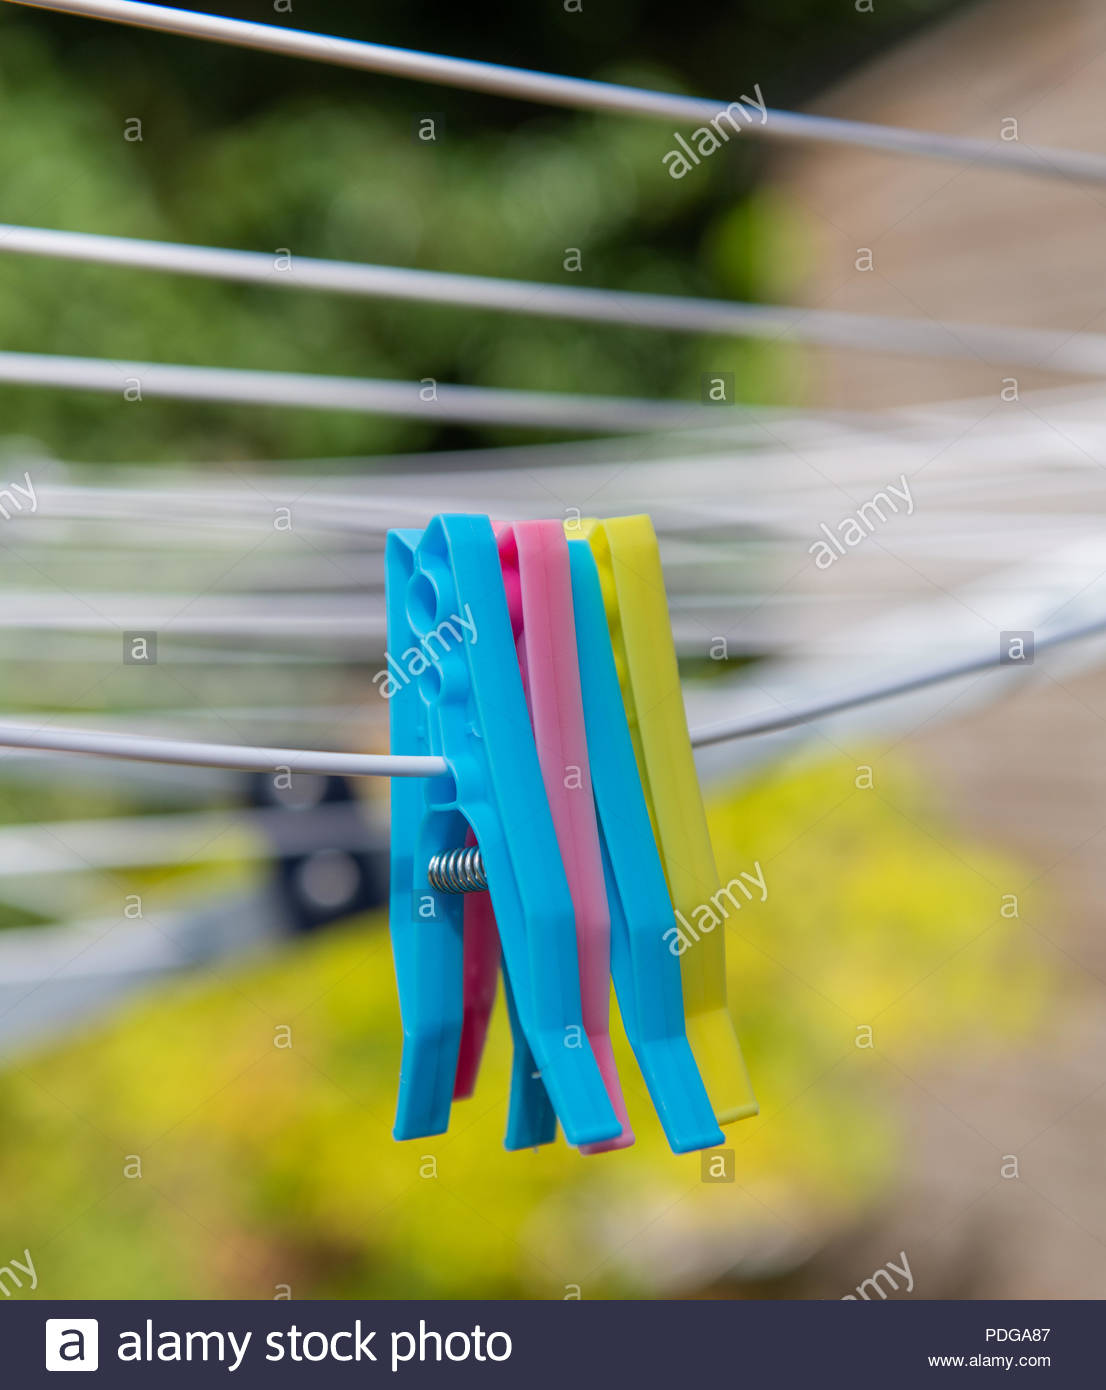 Four colourful plastic pegs hanging on a washing line. - Stock Image